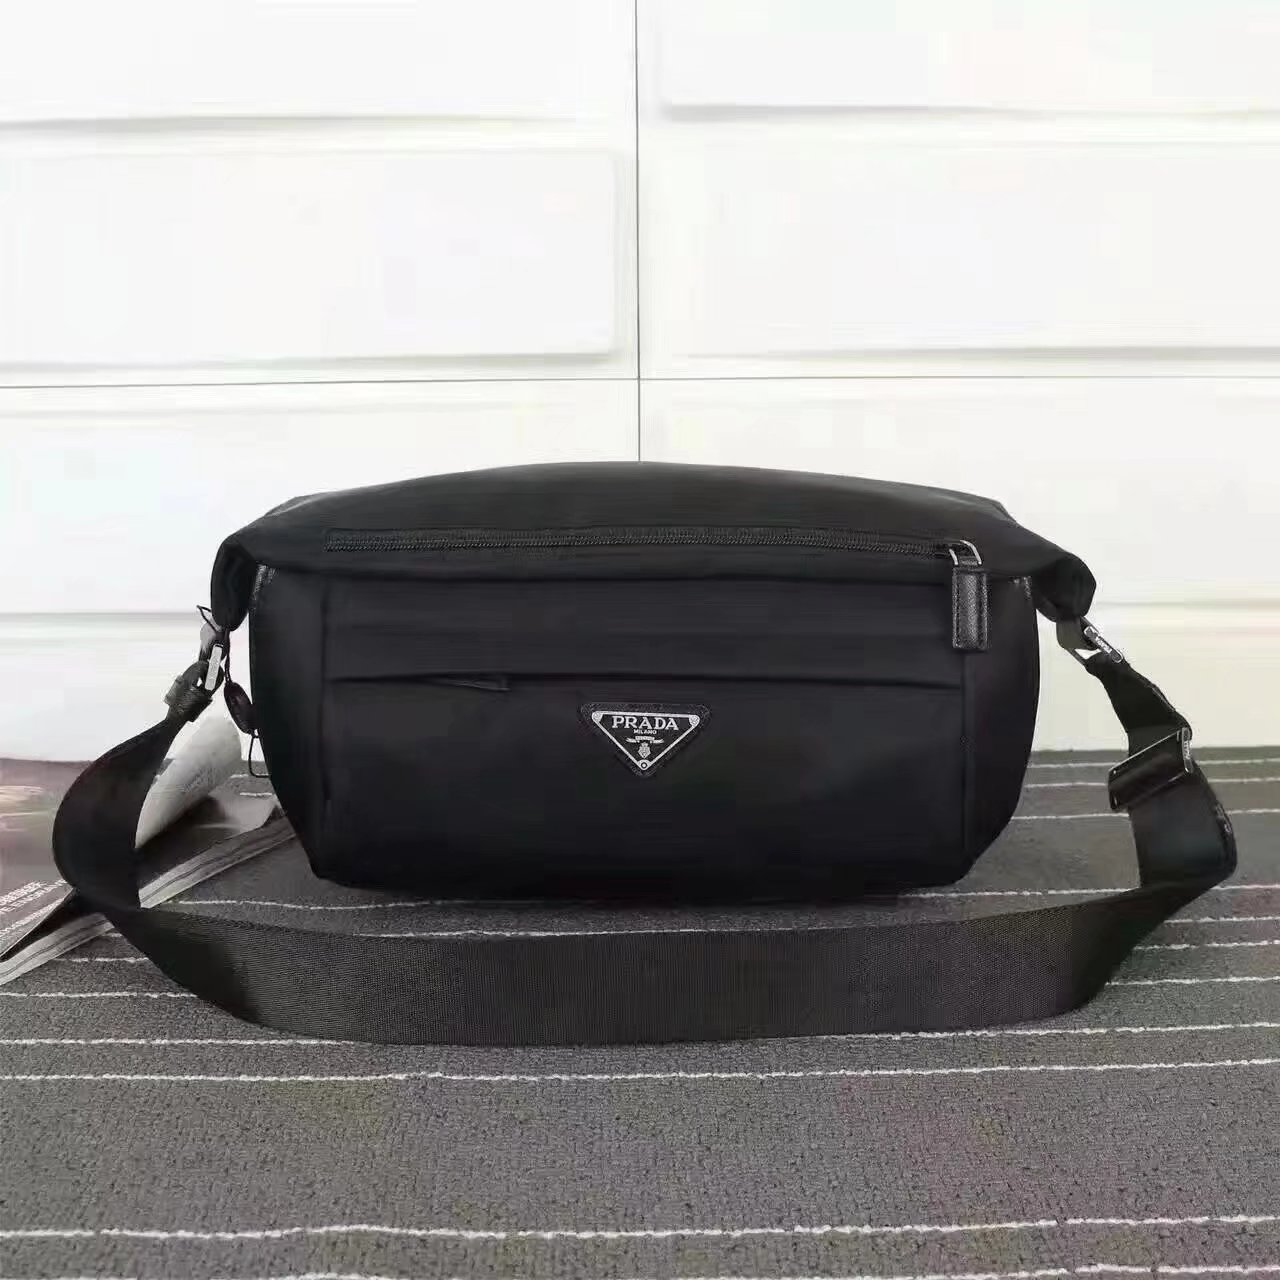 Prada VA991 Men Nylon Waist Bag Black